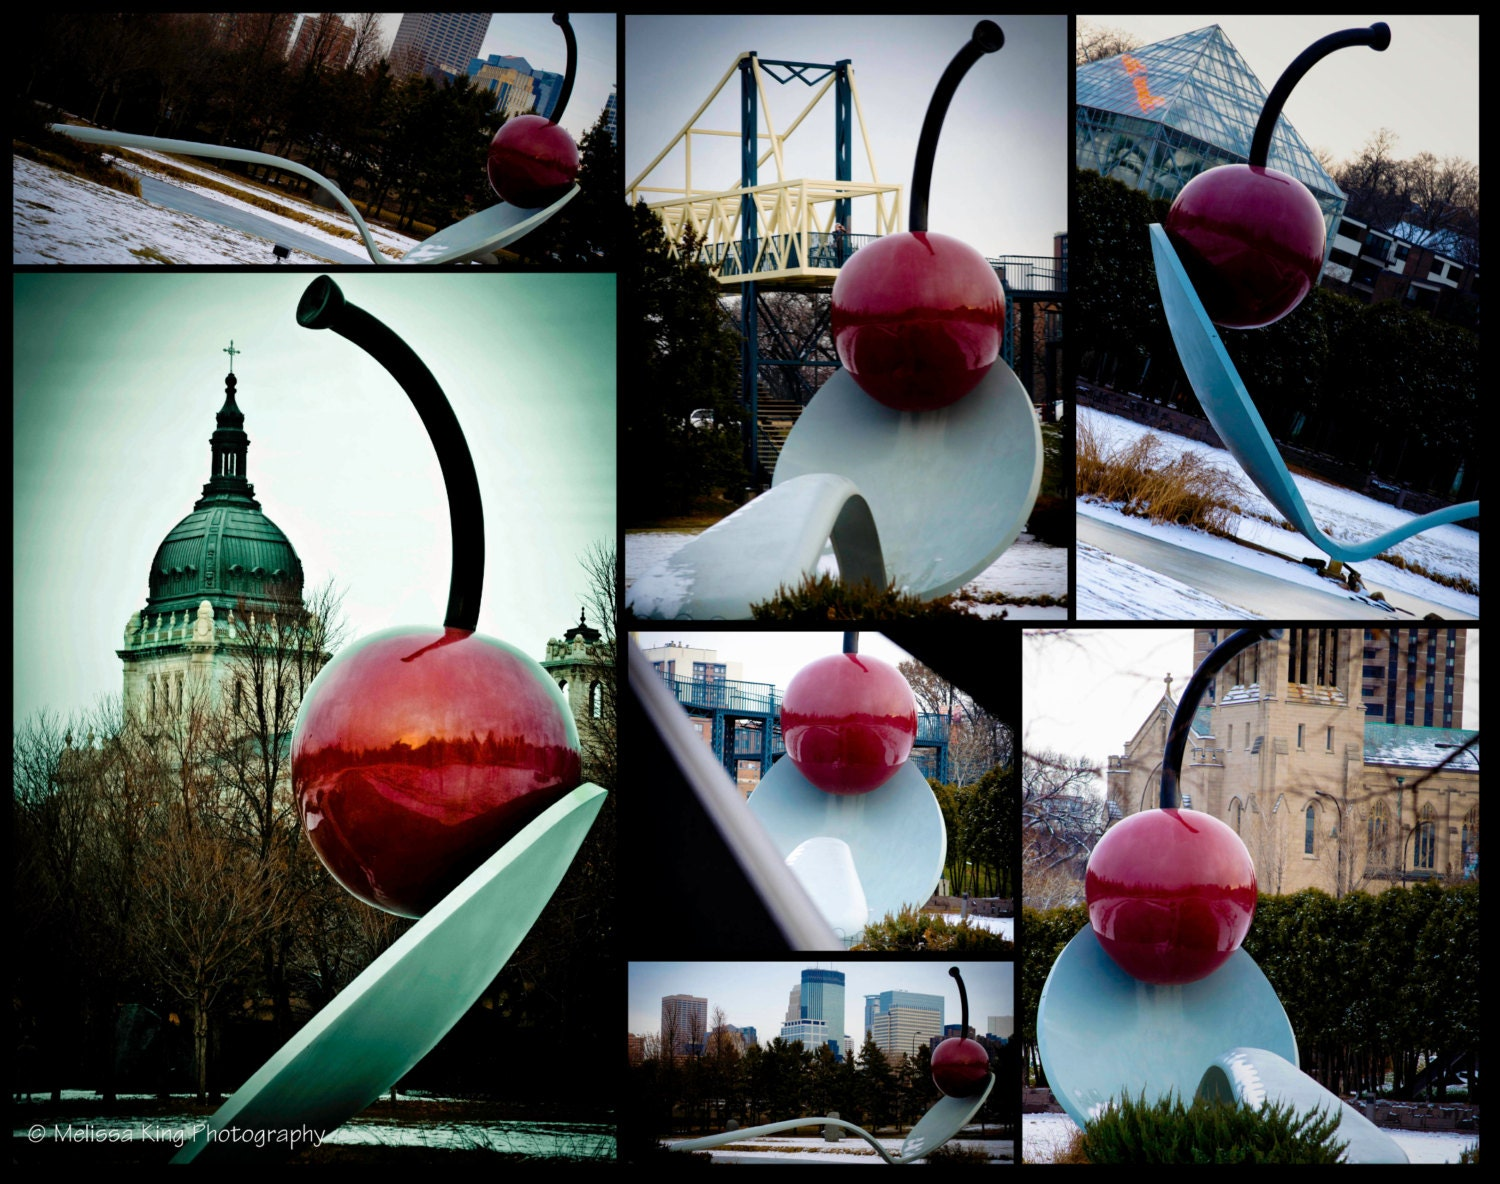 Minneapolis Sculpture Garden Spoon & Cherry by MelissaKingPhoto